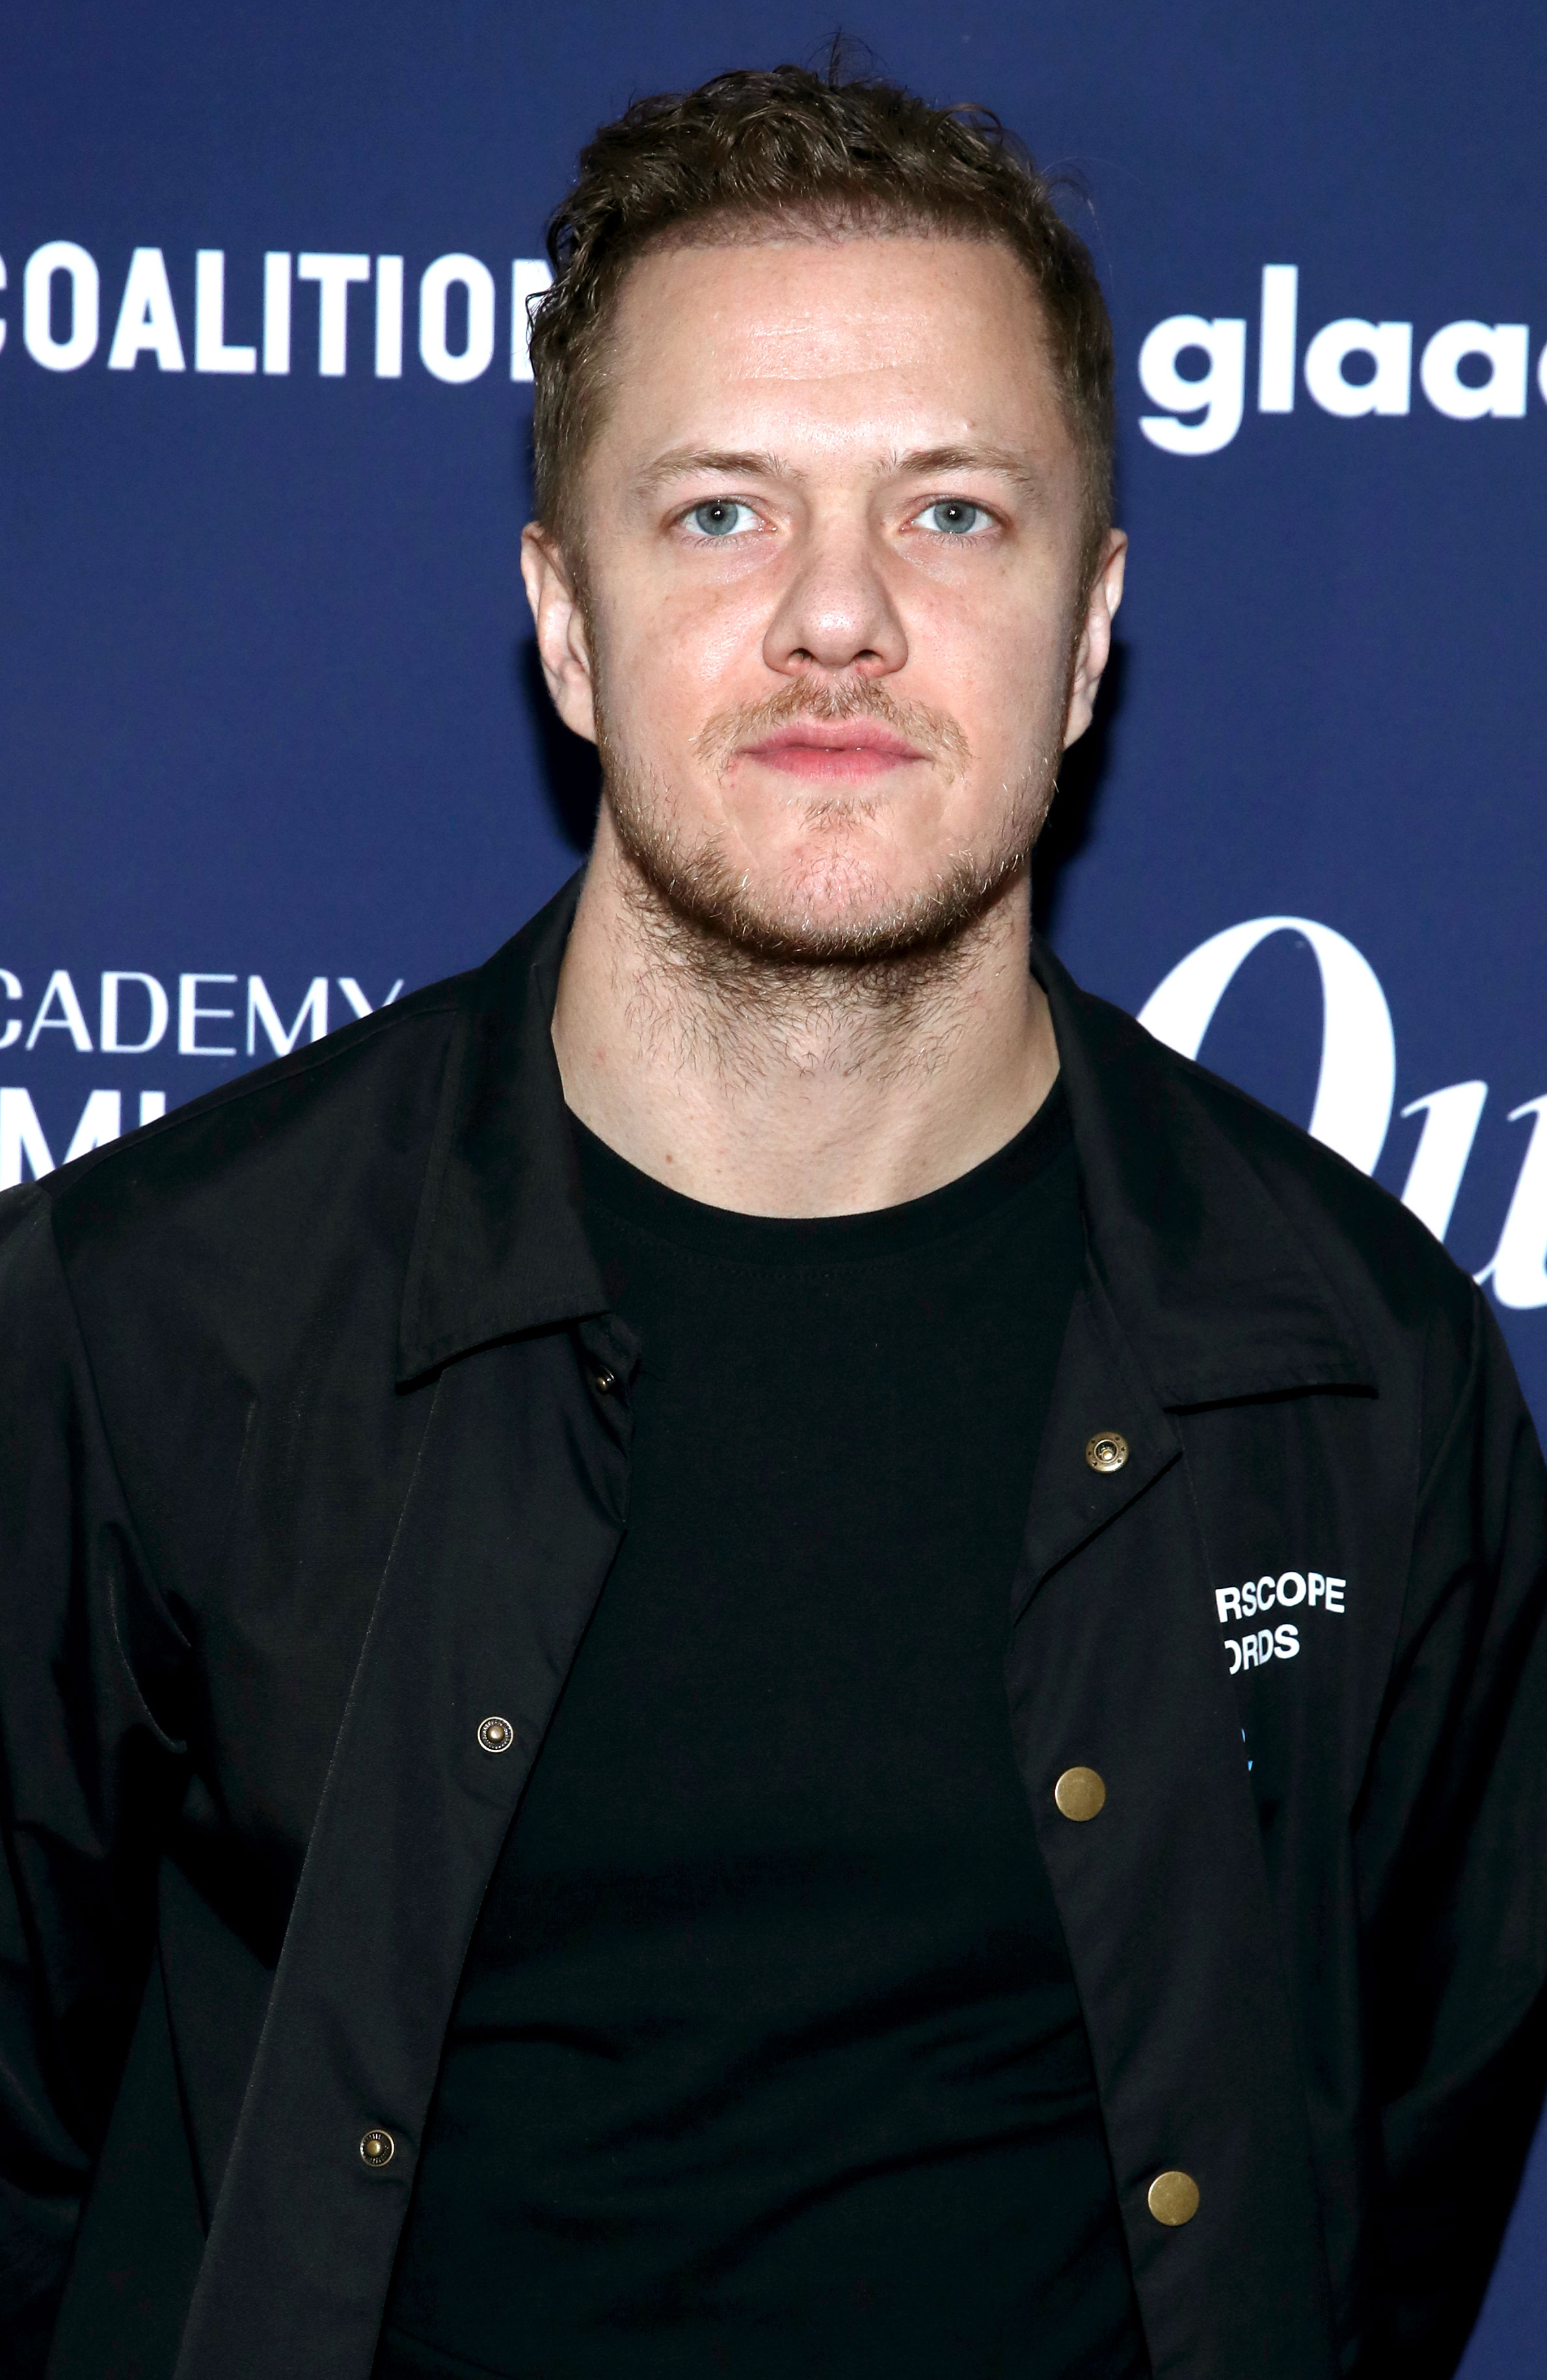 """Dan Reynolds React Sri Lanka Bombings - """"Heartbroken for the people of Sri Lanka,"""" the Imagine Dragons singer wrote. """"There are no words that could possibly bring comfort or understanding at times like these - I can only offer my deepest sorrow and love along with the millions of others mourning today."""""""